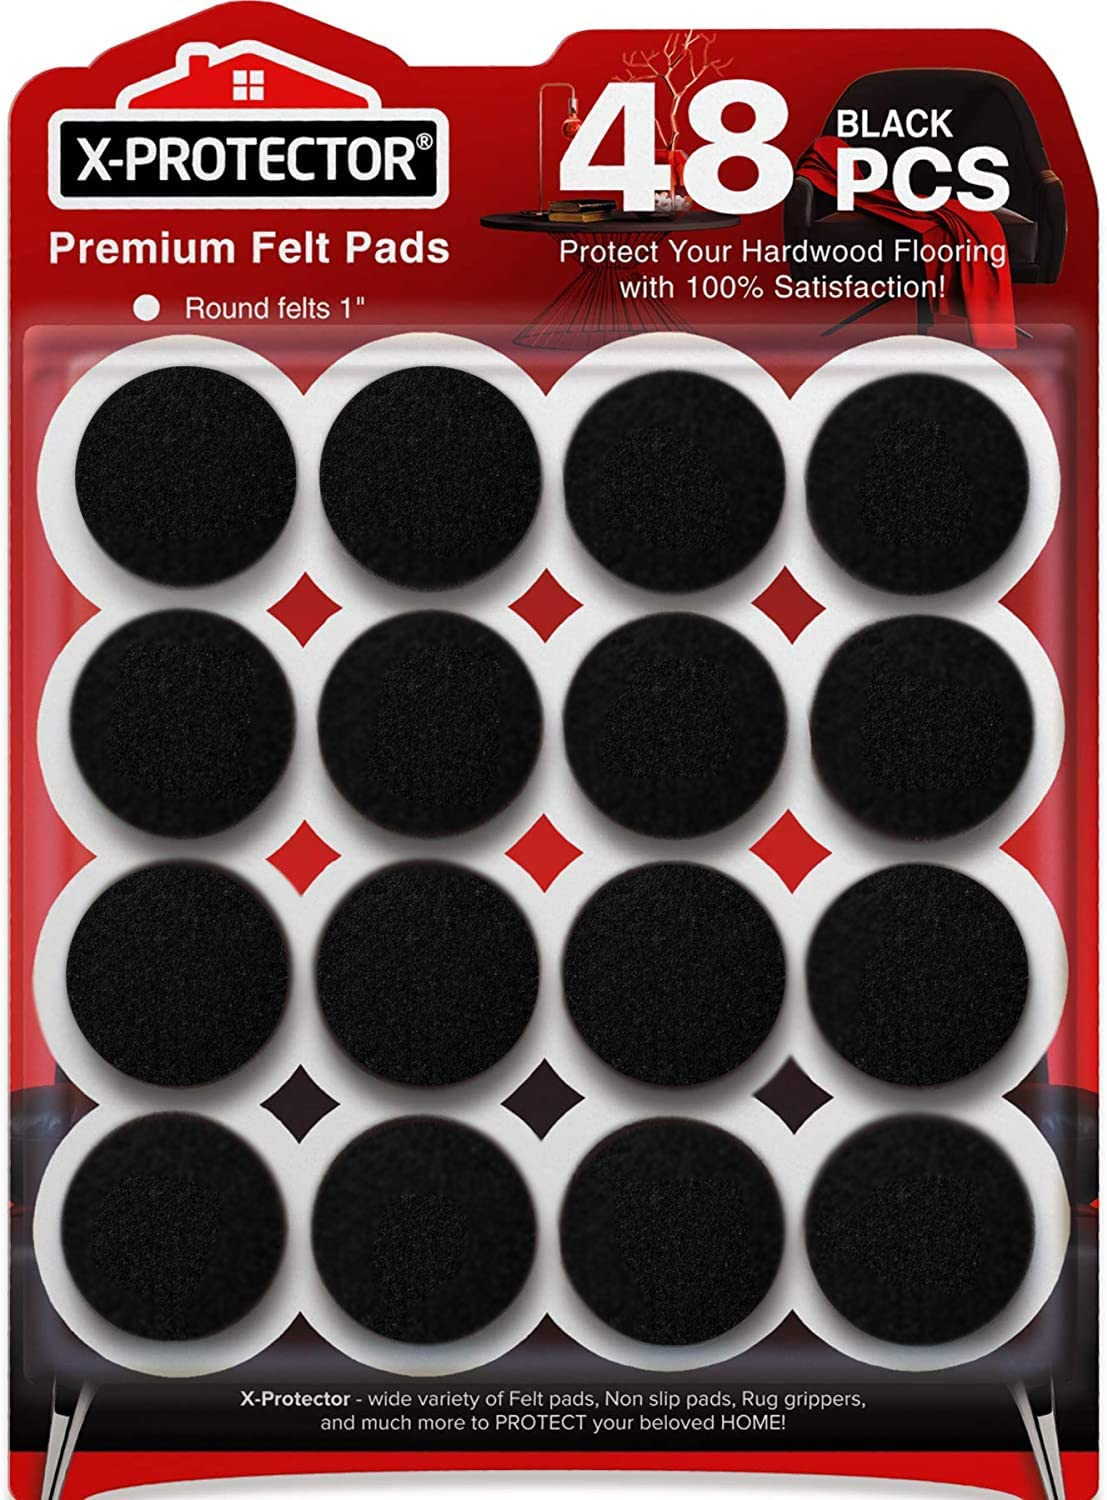 Felt Furniture Pads X-PROTECTOR-48 Premium Felt Pads Floor Protector - Chair Felts Pads for Furniture Feet Wood Floors - Best Furniture Pads for Hardwood Floors - Protect Your Wood Floors! (Black)